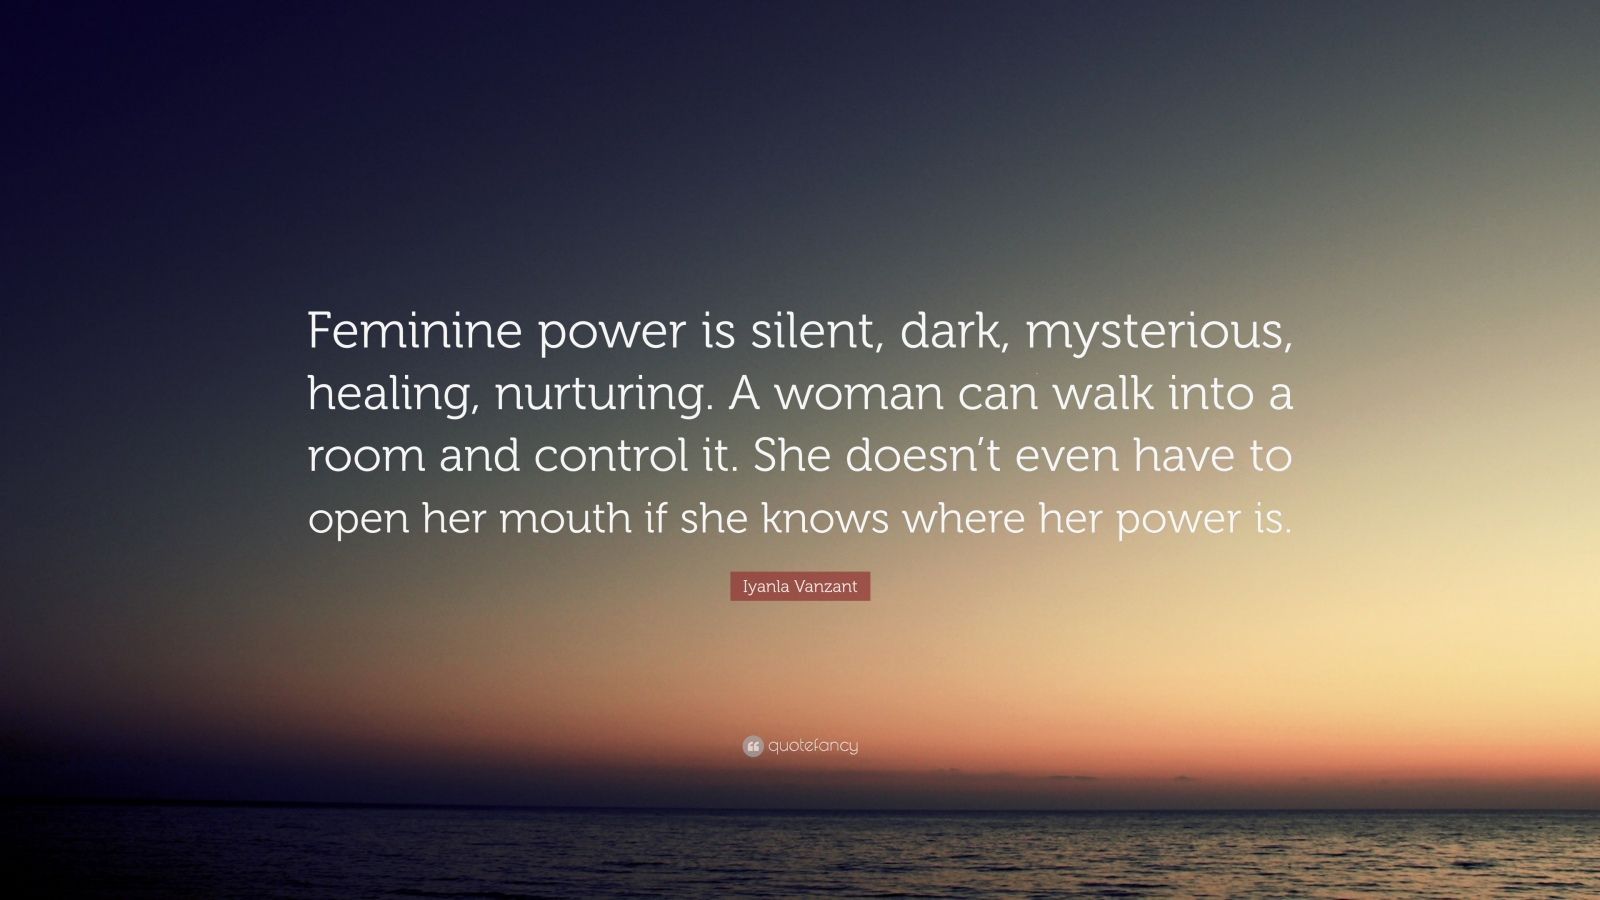 """Iyanla Vanzant Quote: """"Feminine power is silent, dark, mysterious, healing, nurturing. A woman can walk into a room and control it. She doesn't even have to open her mouth if she knows where her power is."""""""